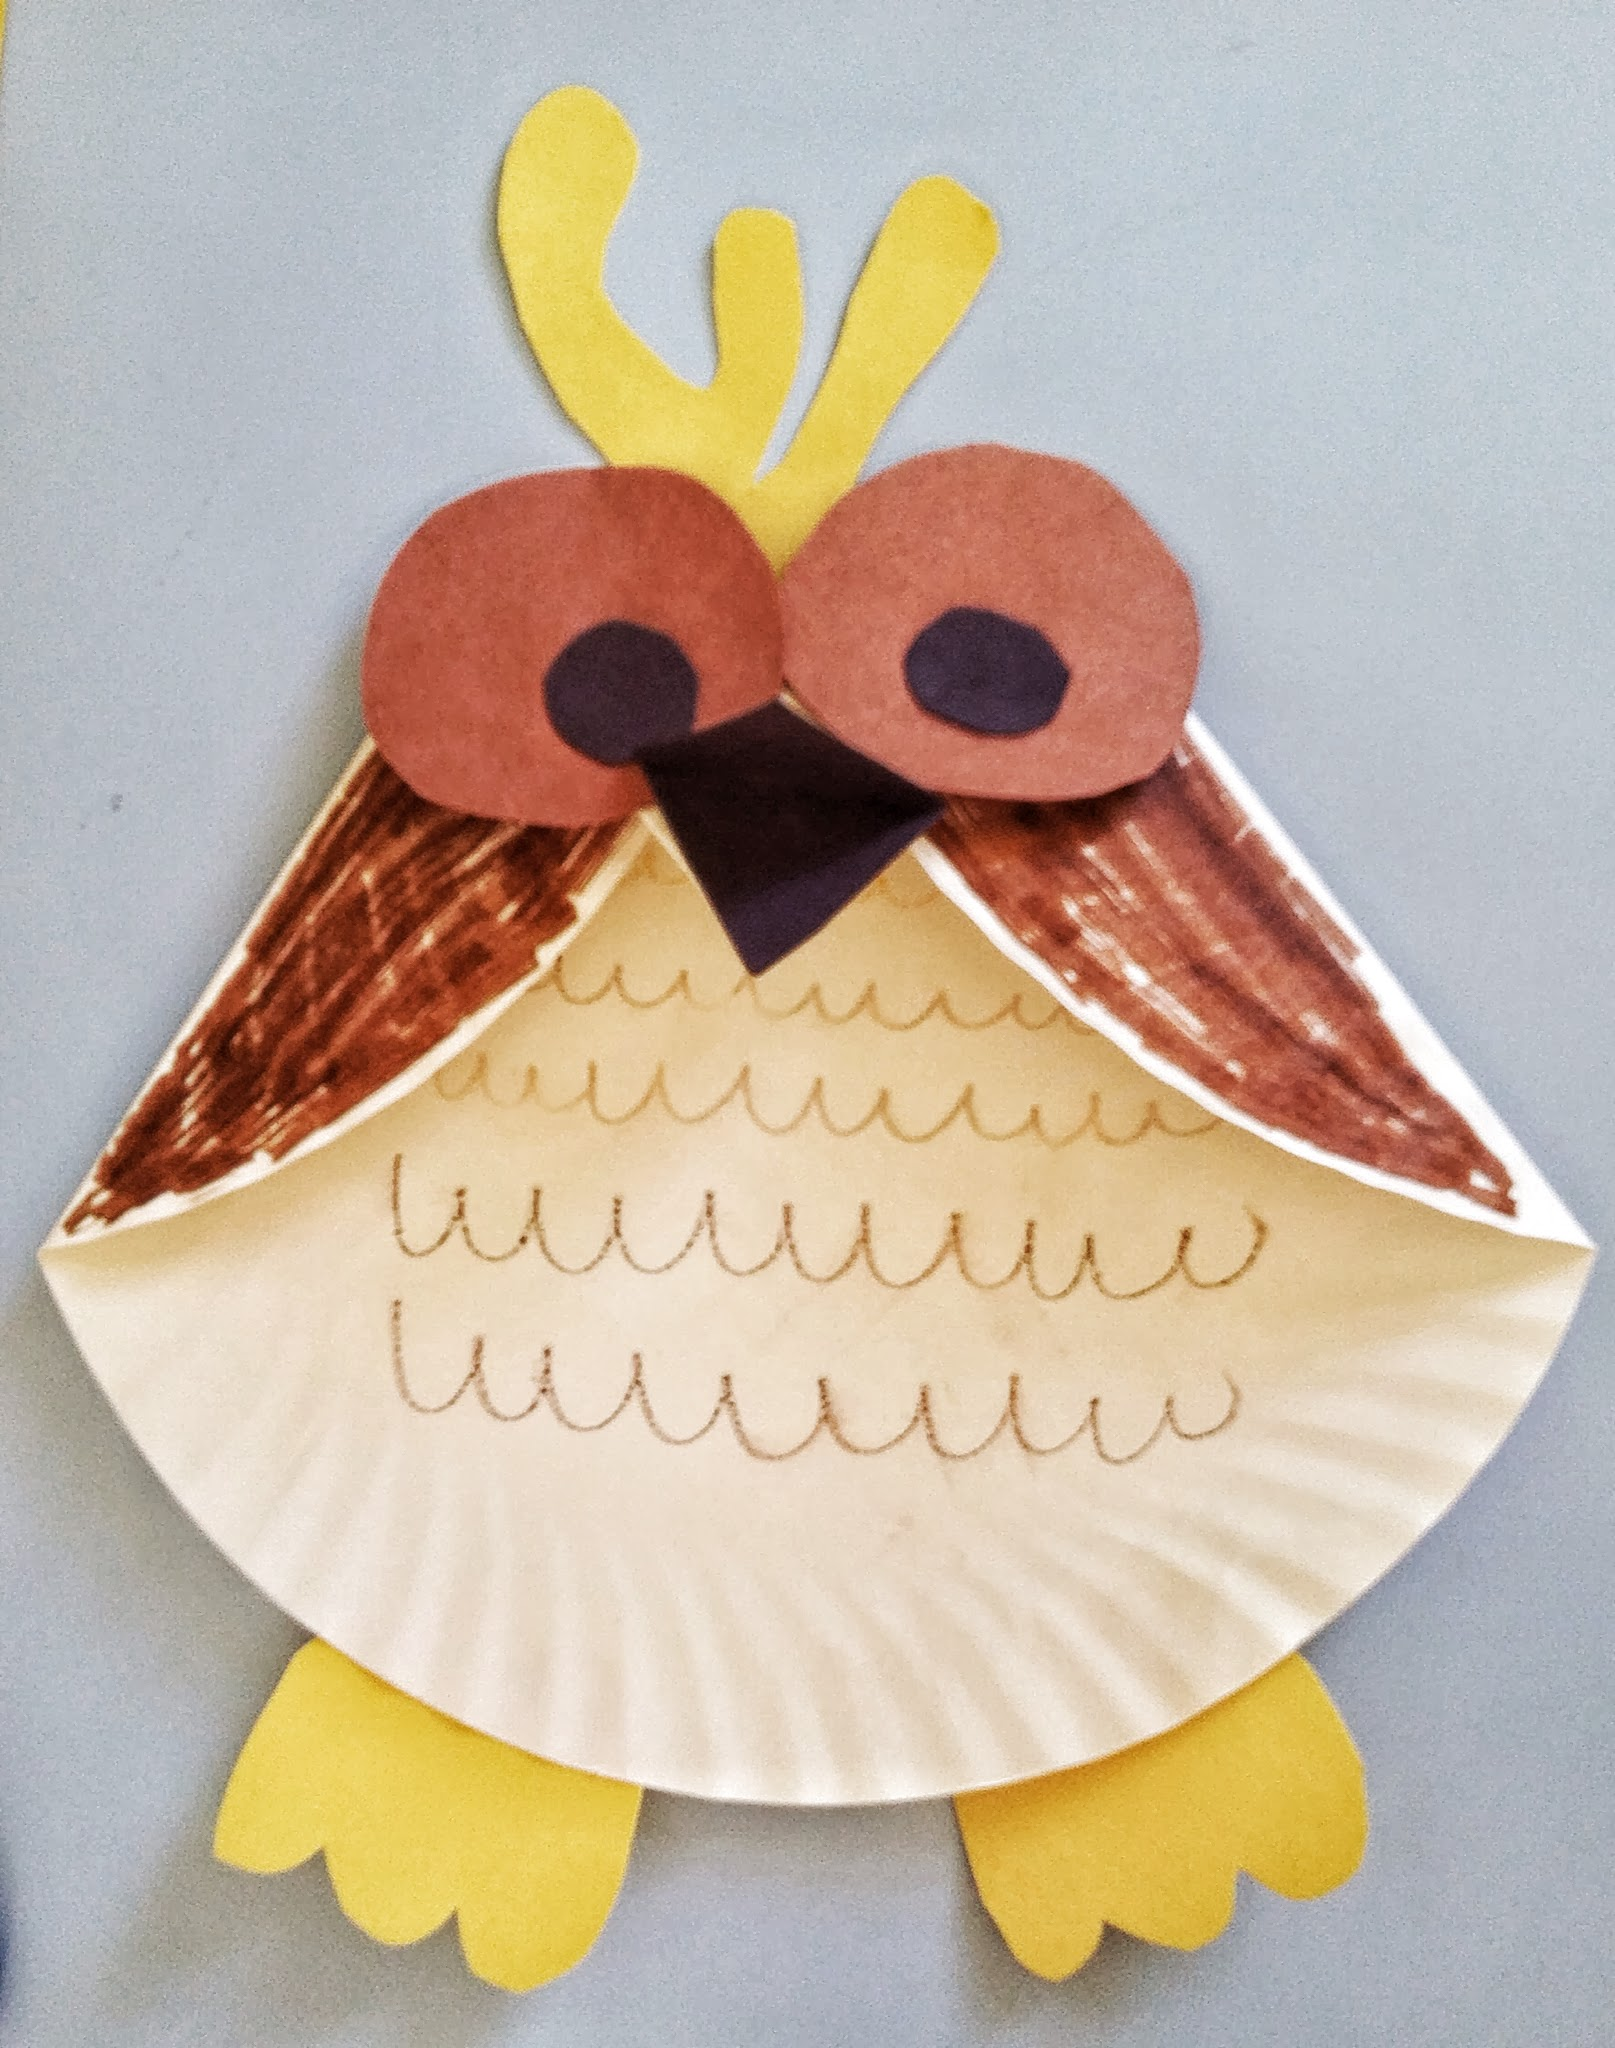 & Fun Activities for Kids: Paper Plate Owl Craft | Mommysavers